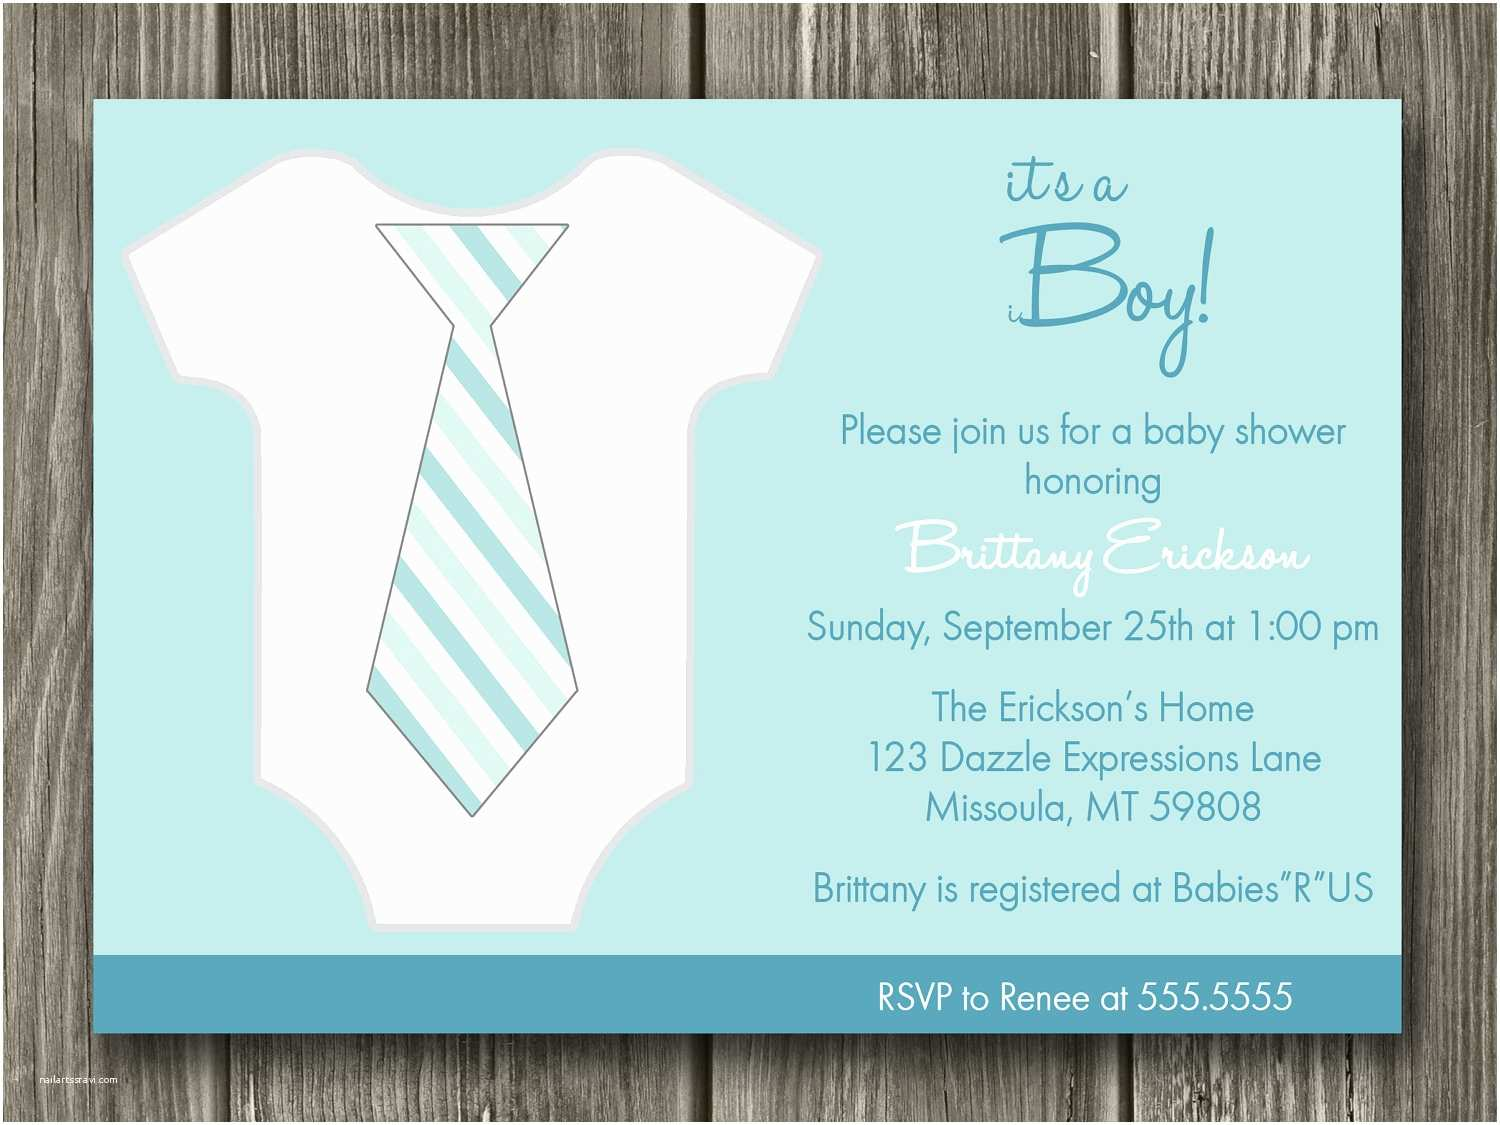 Custom Baby Shower Invitations Custom Invitations for Baby Shower